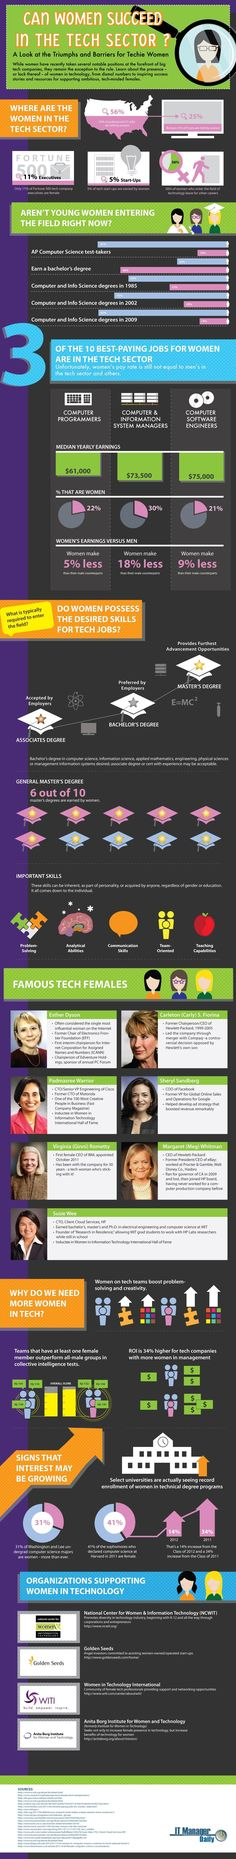 Can Women Succeed In the Tech Sector?